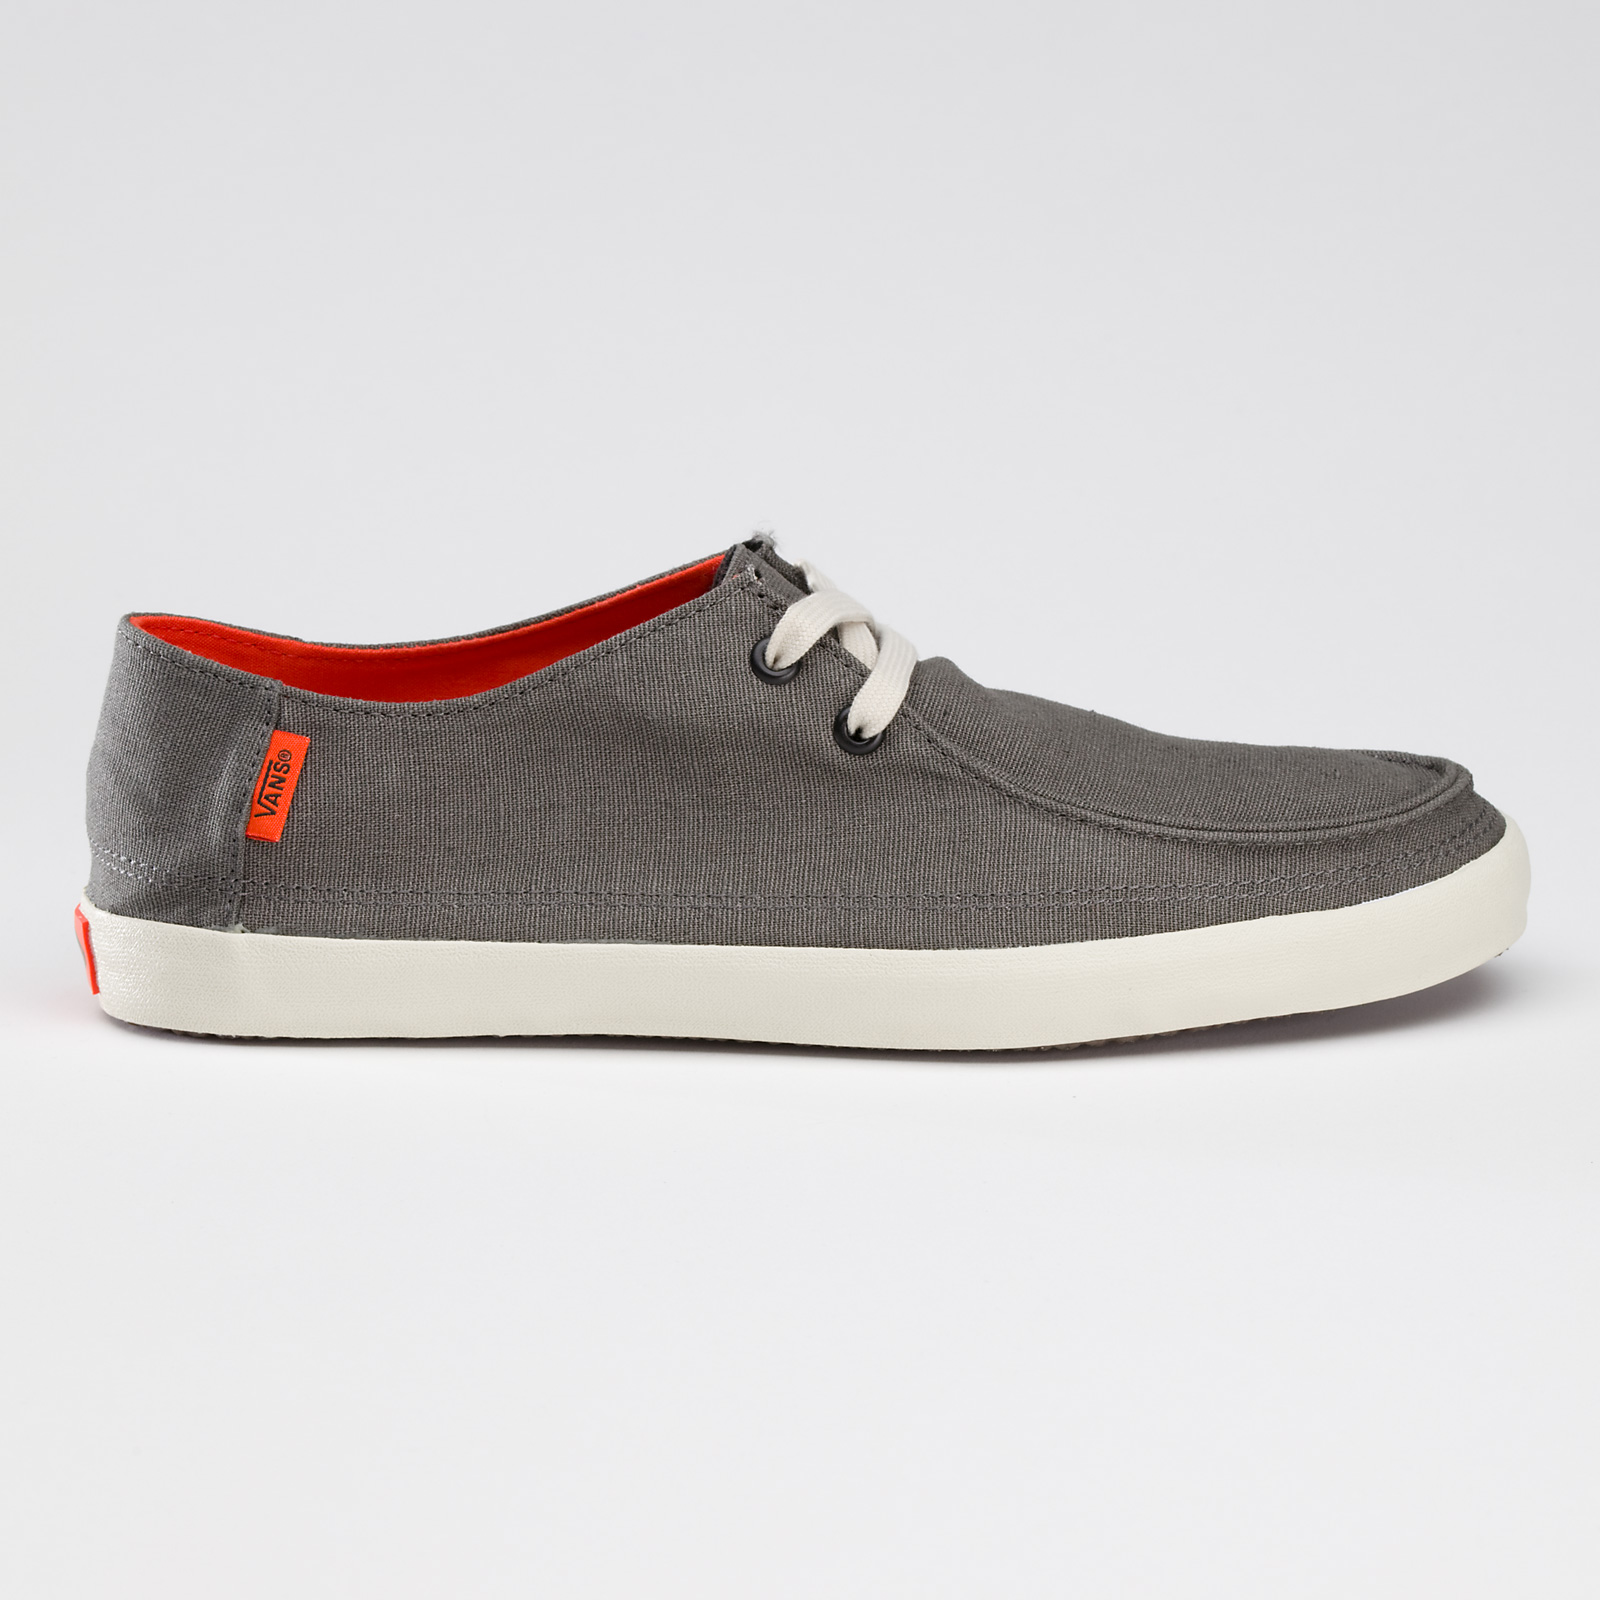 Vans Rata Vulc Charcoal Spicy Orange